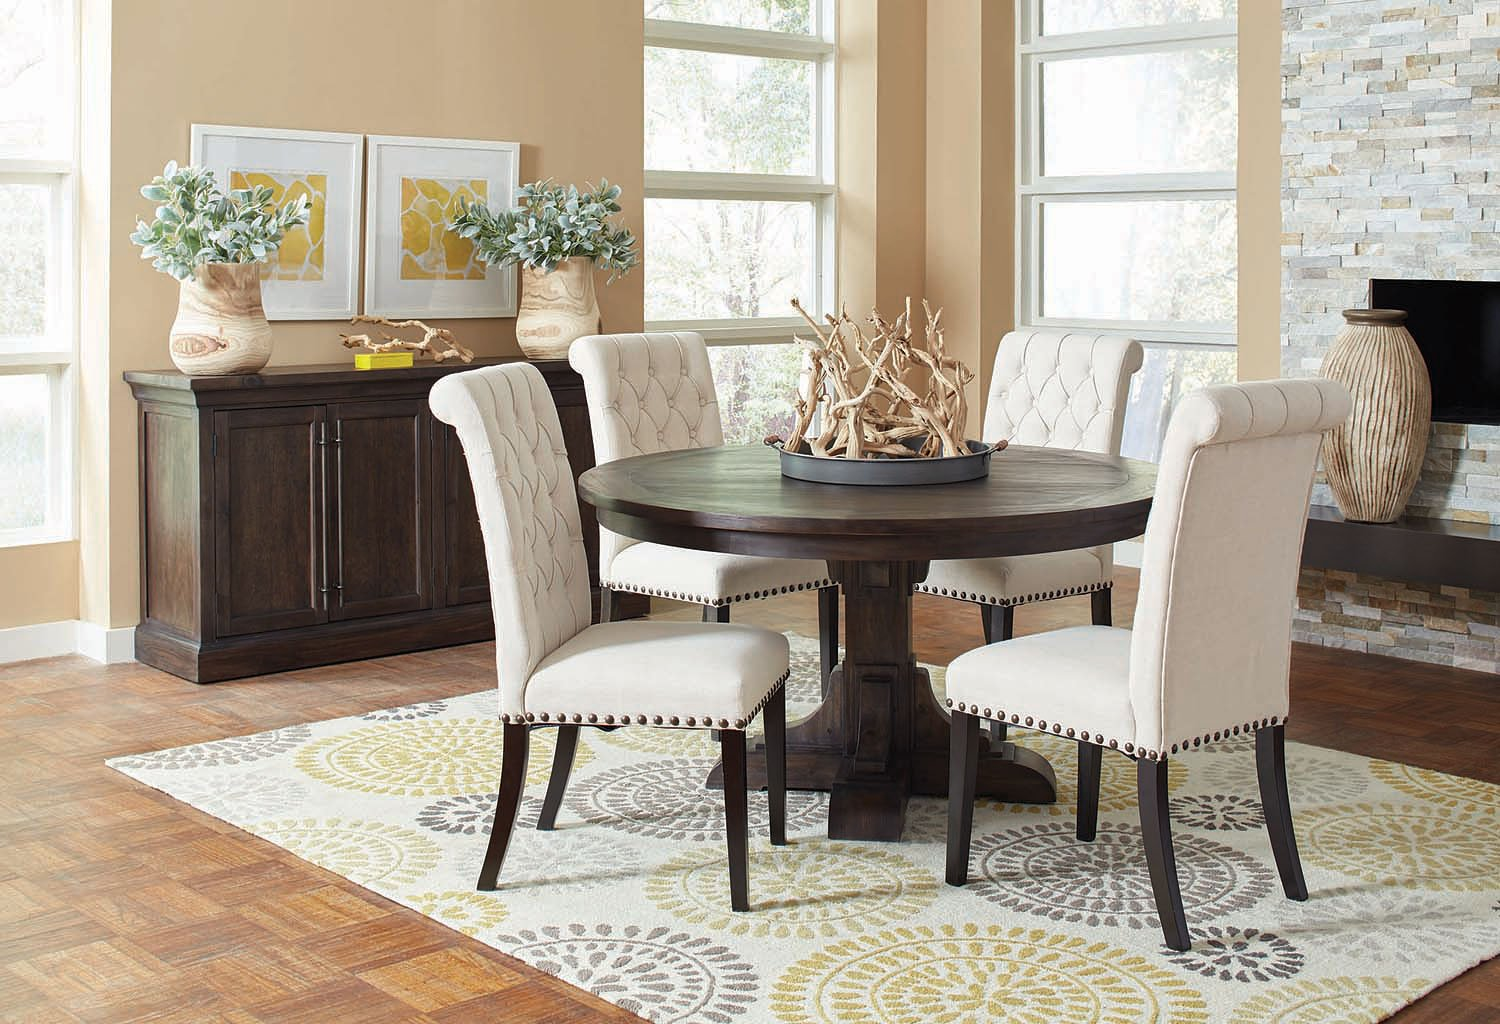 Weber Round Dining Room Set W/ Cream Chairs By Coaster